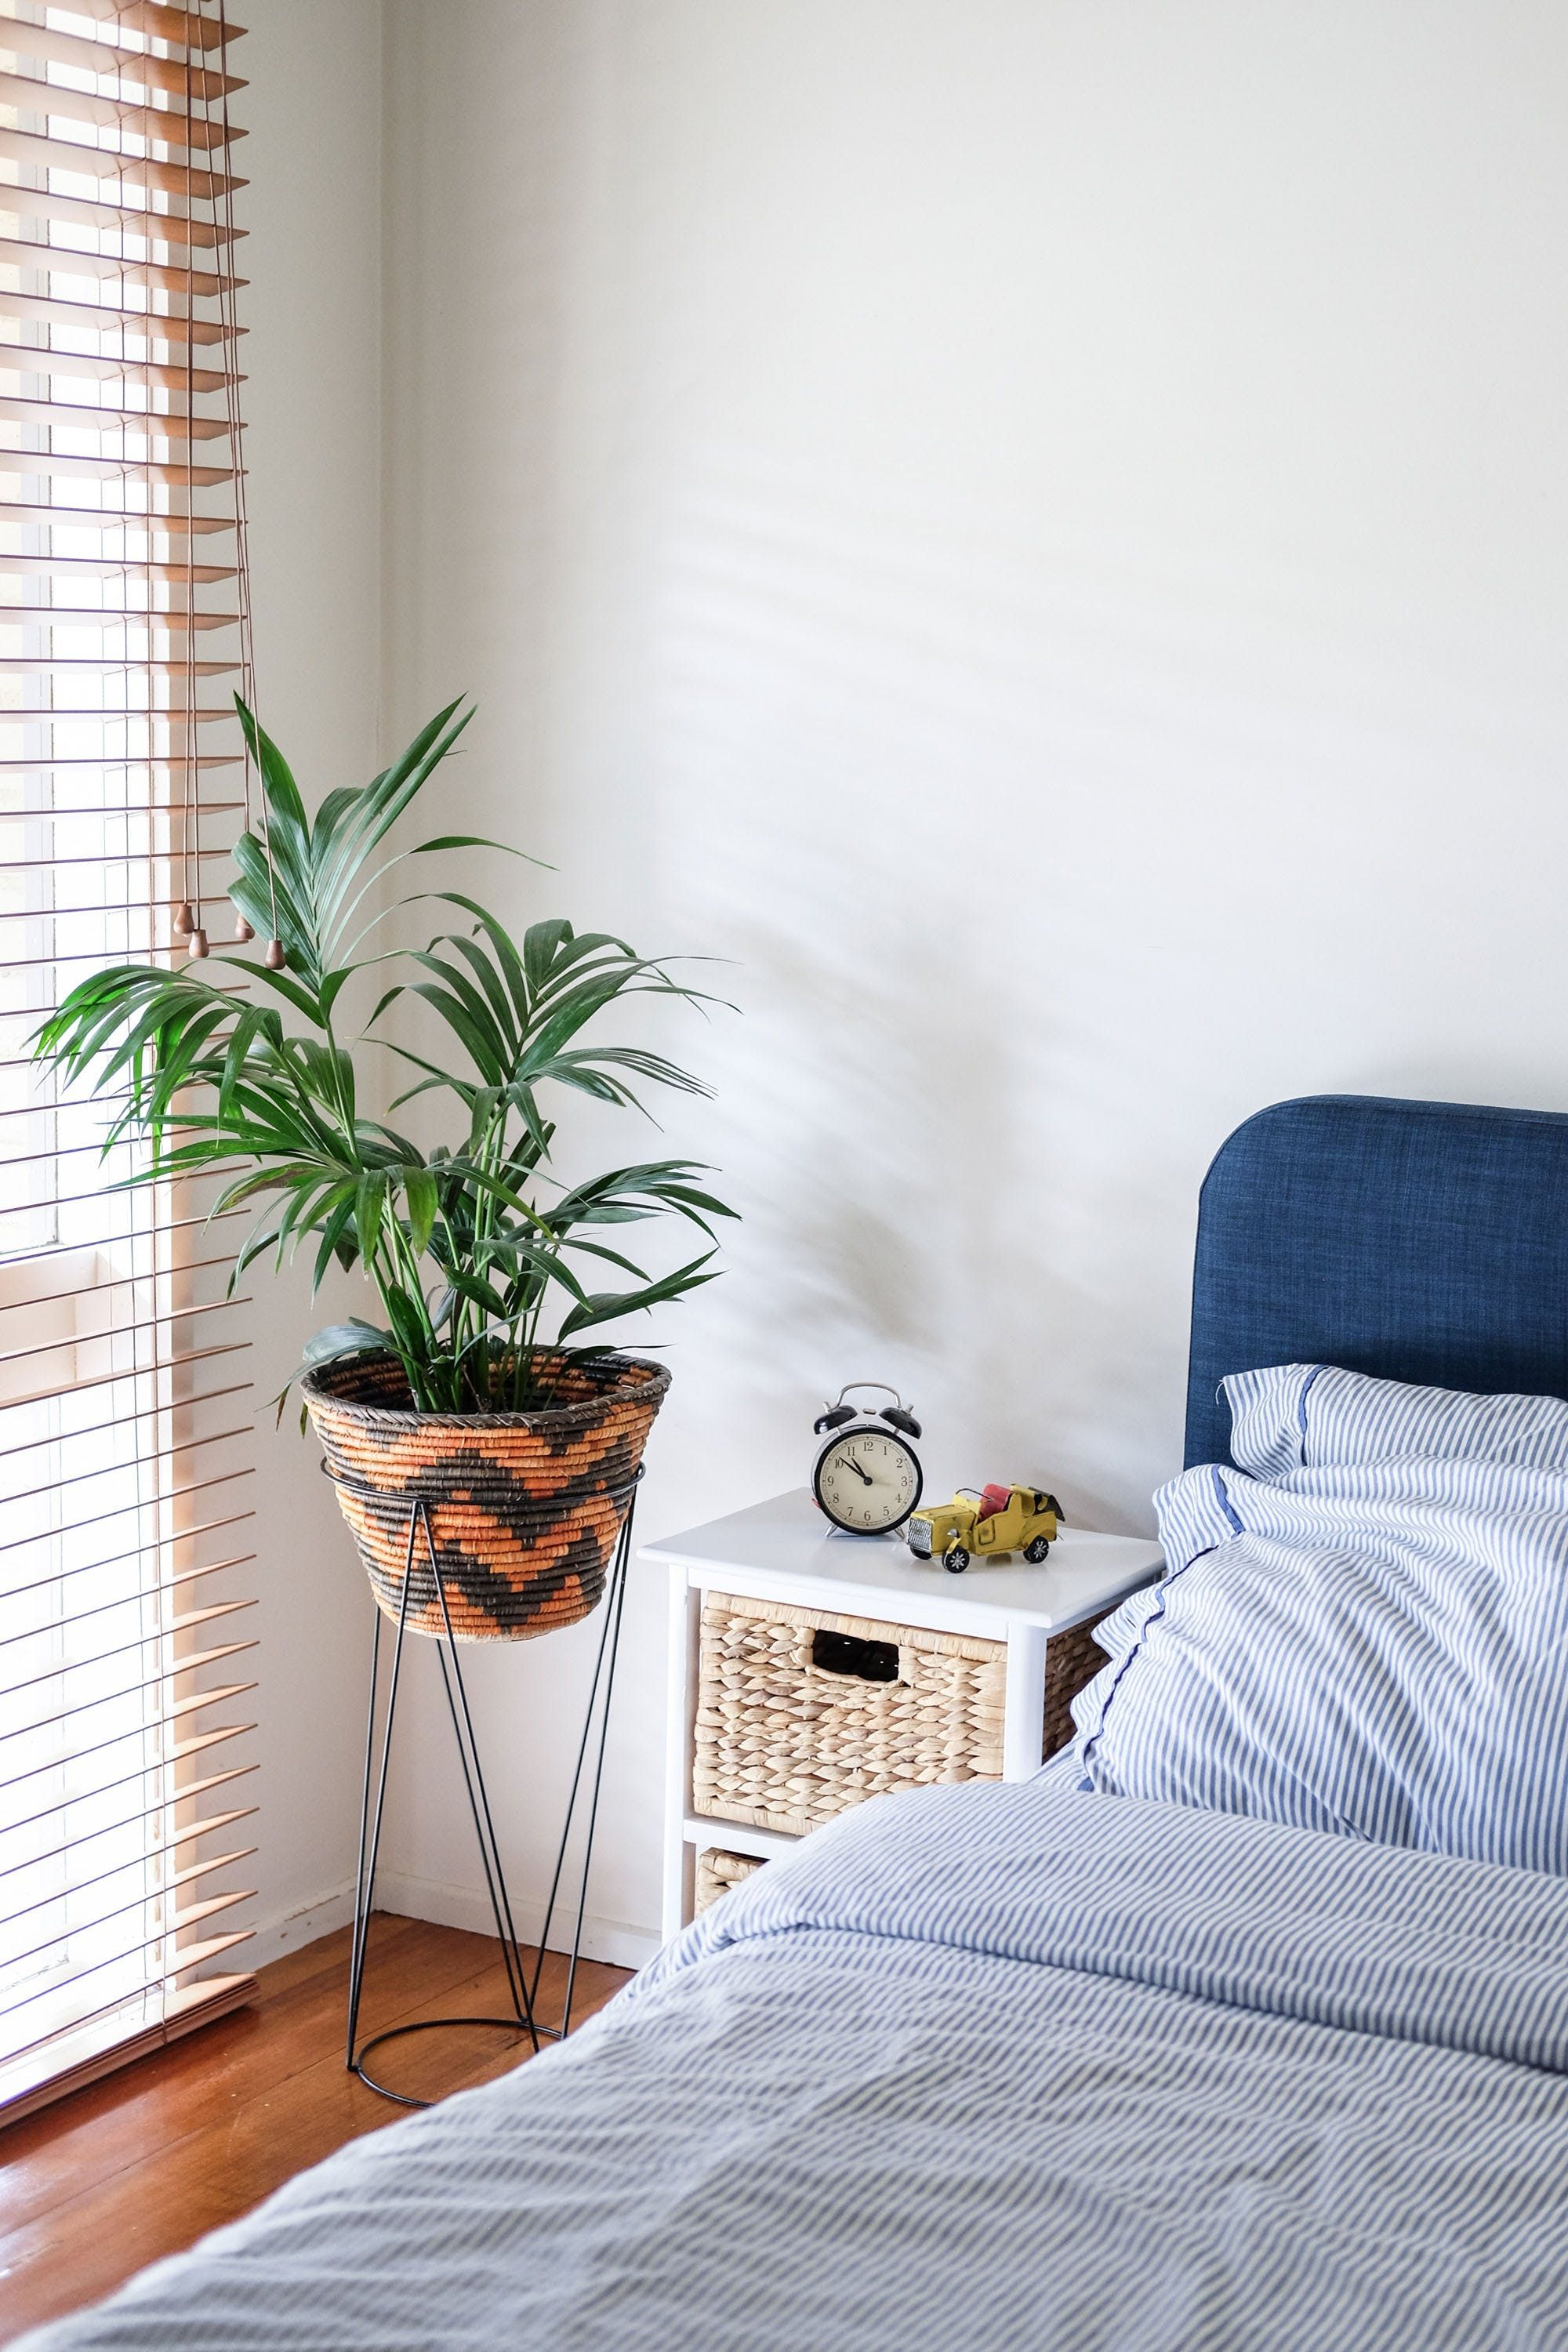 A Melbourne Rental Apartment Is A Cheery, Happy, Modern Mix